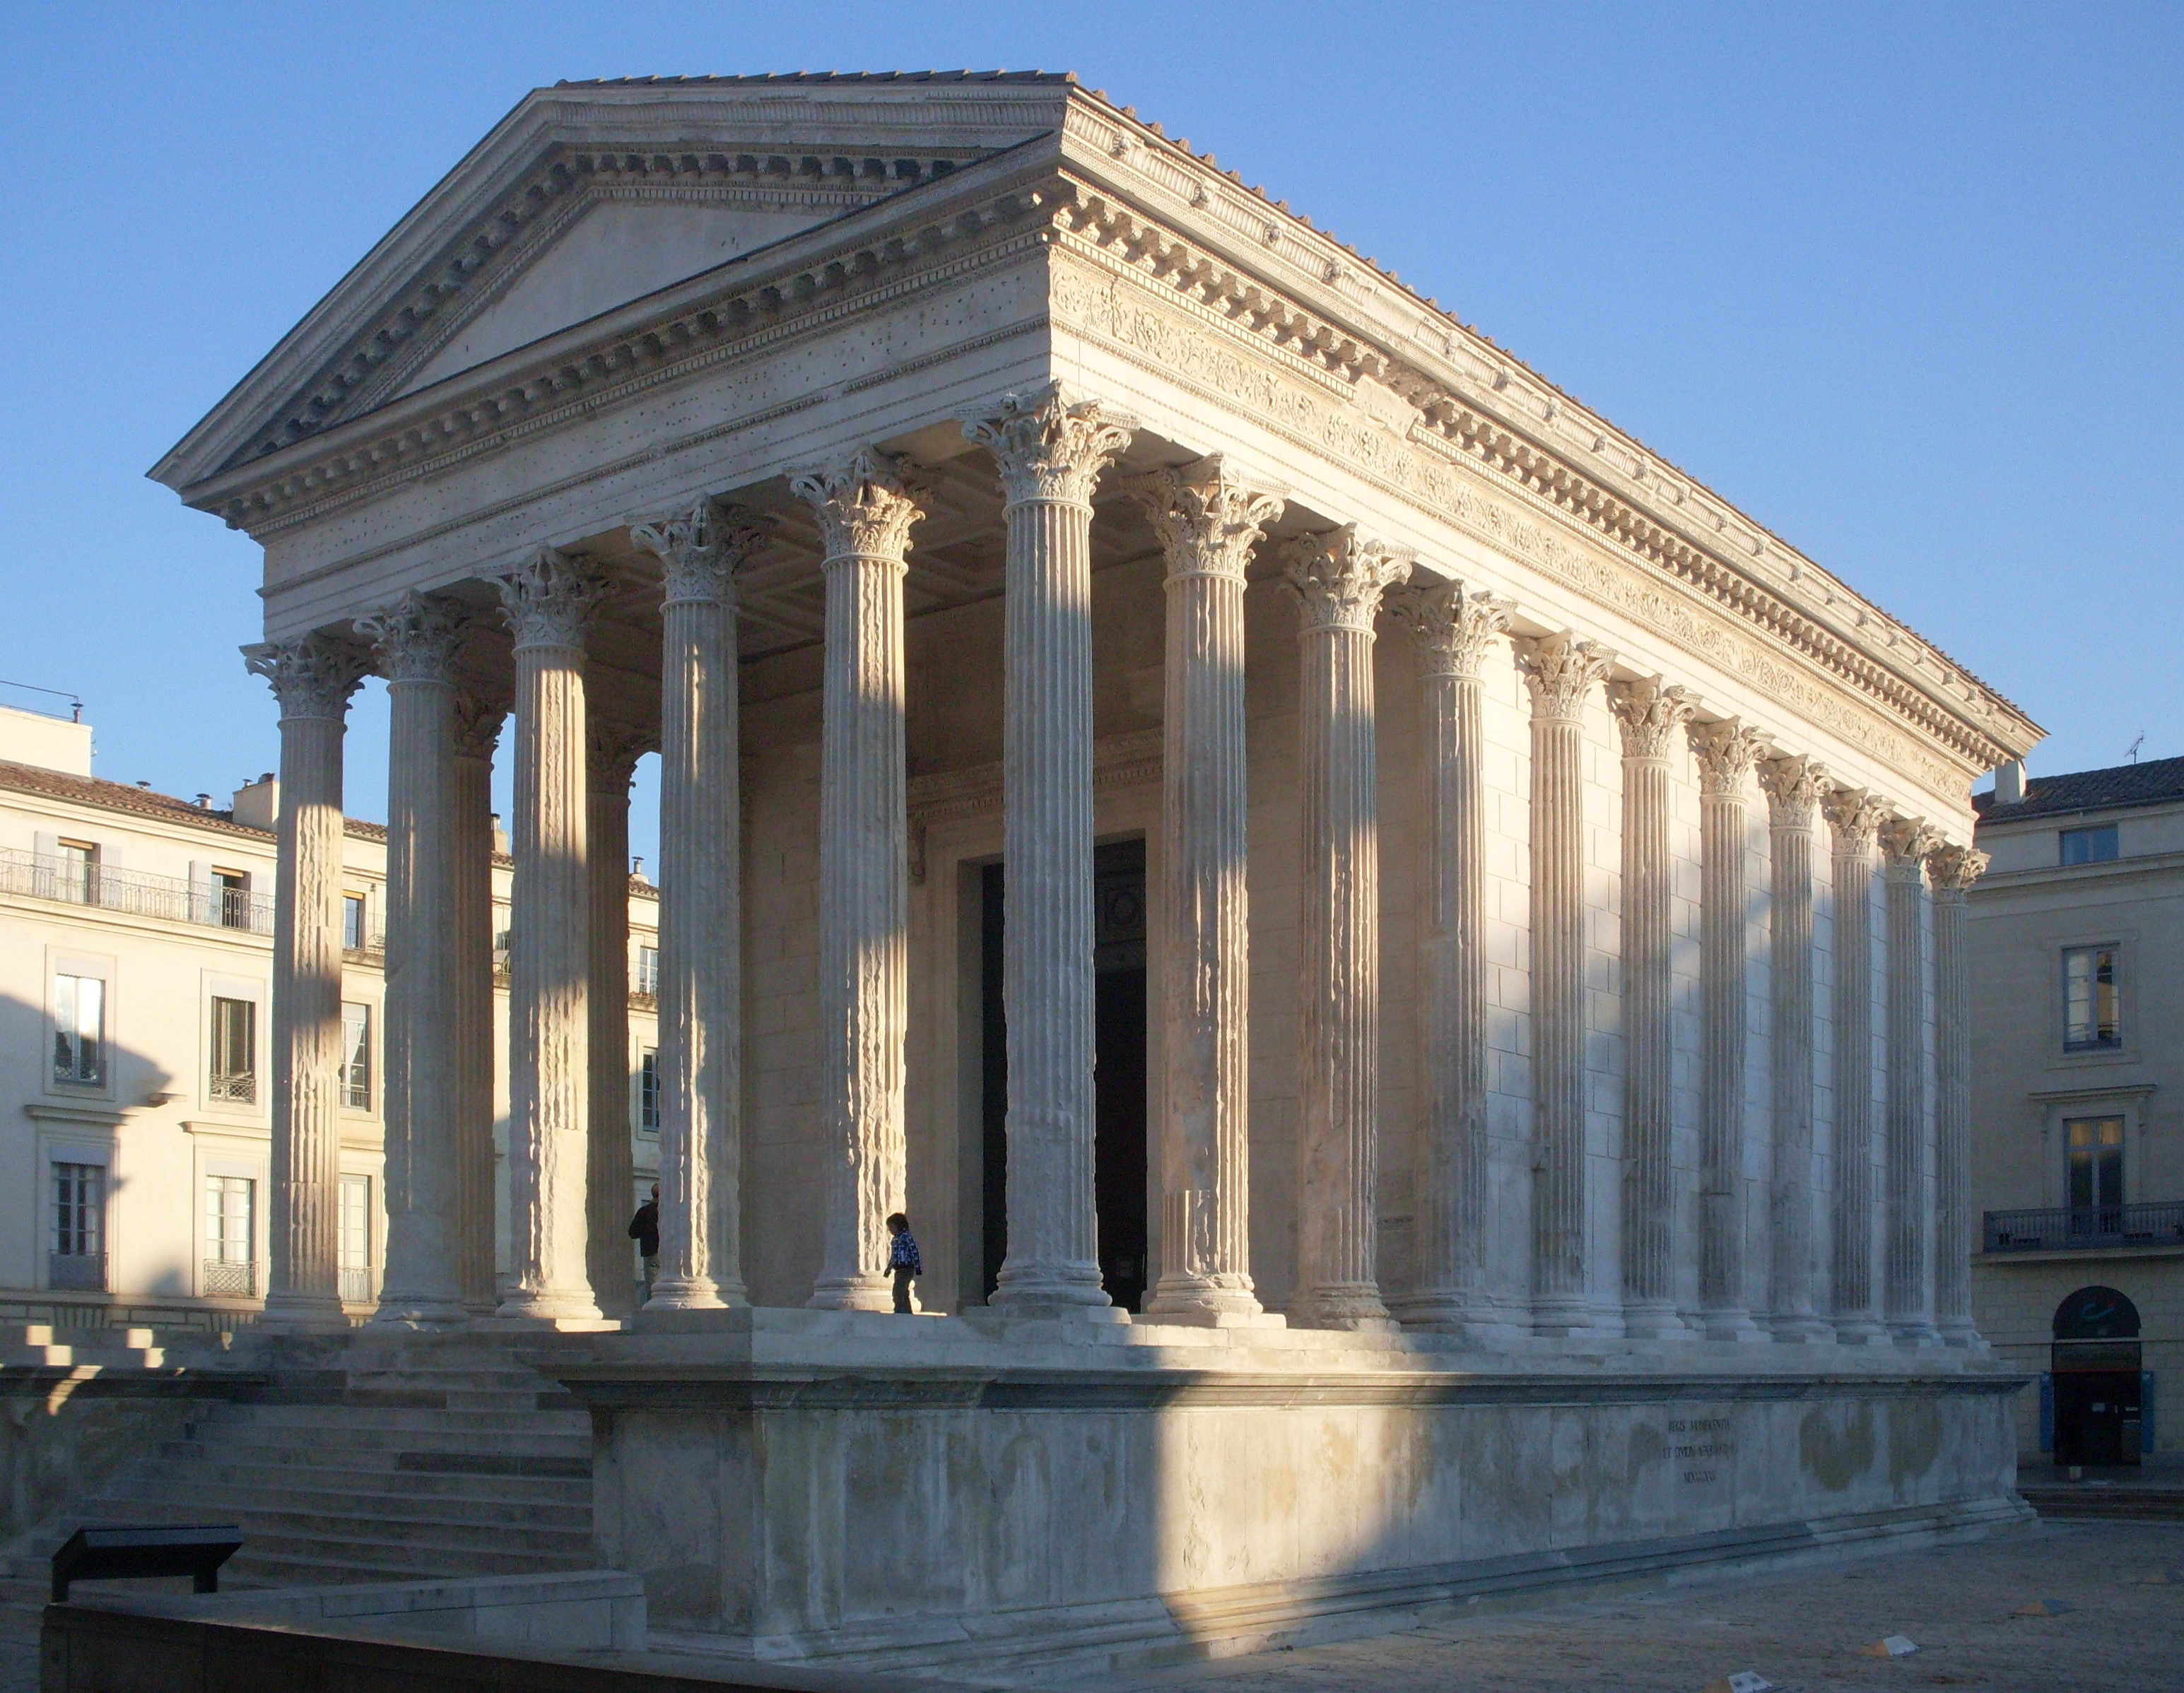 Maison Carrée – Wikipedia